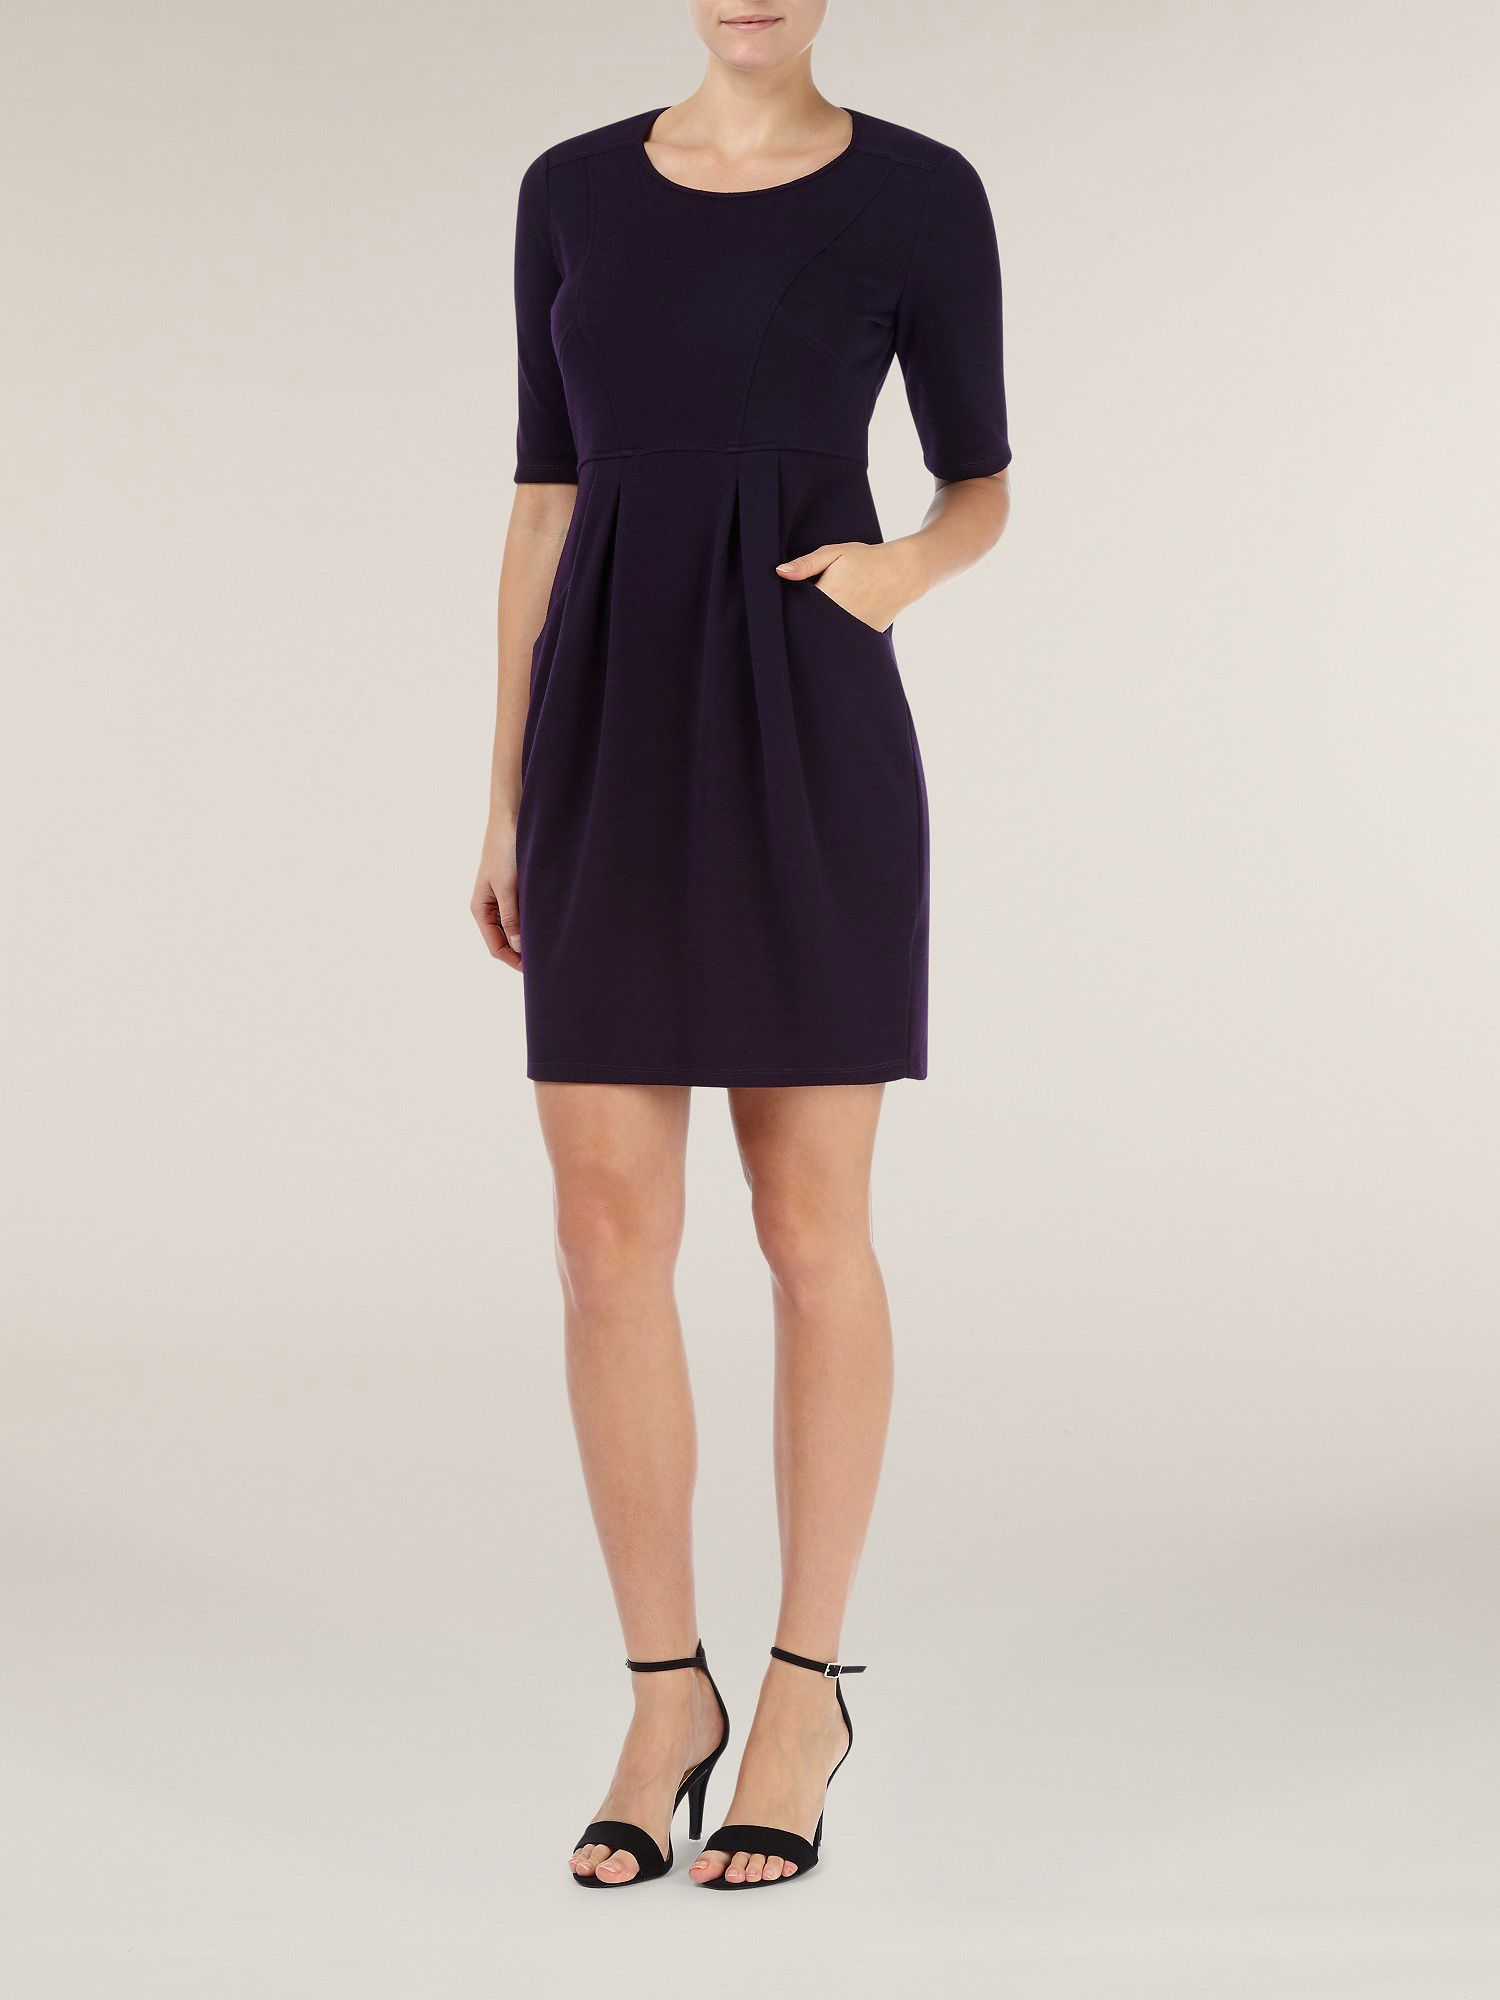 Purple panelled dress